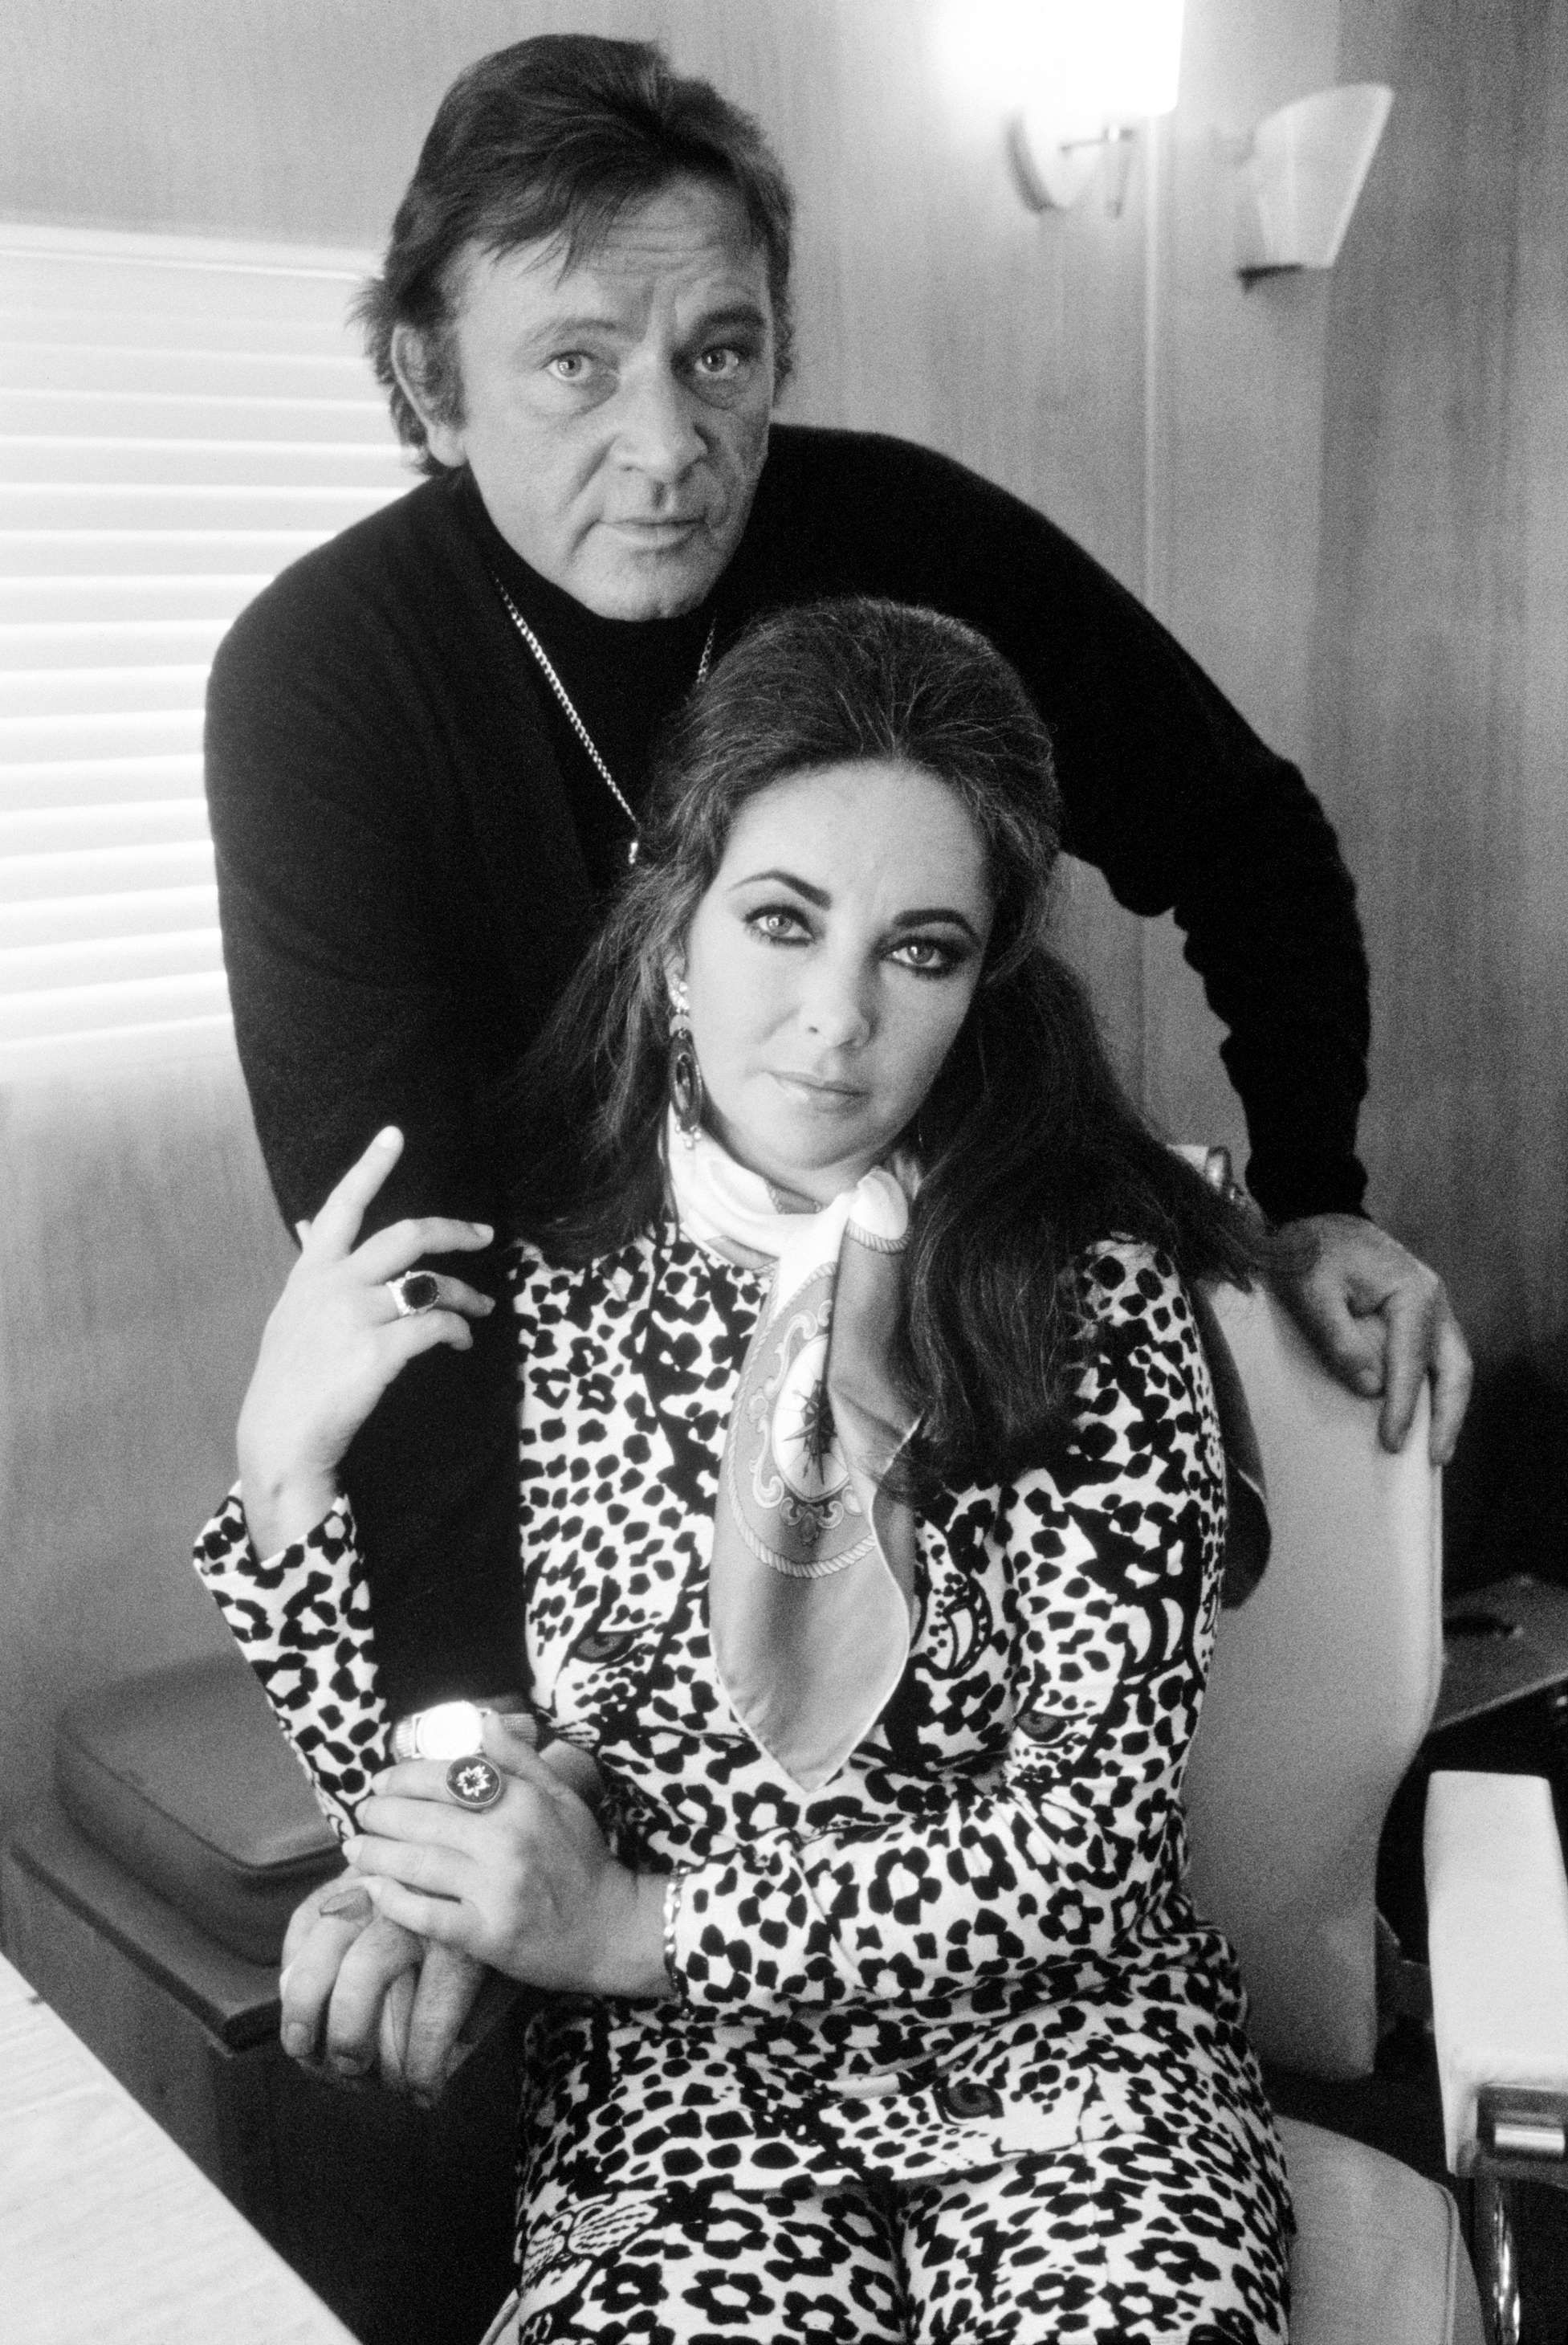 Elizabeth Taylor & Richard Burton, 1974 by Terry O'Neill